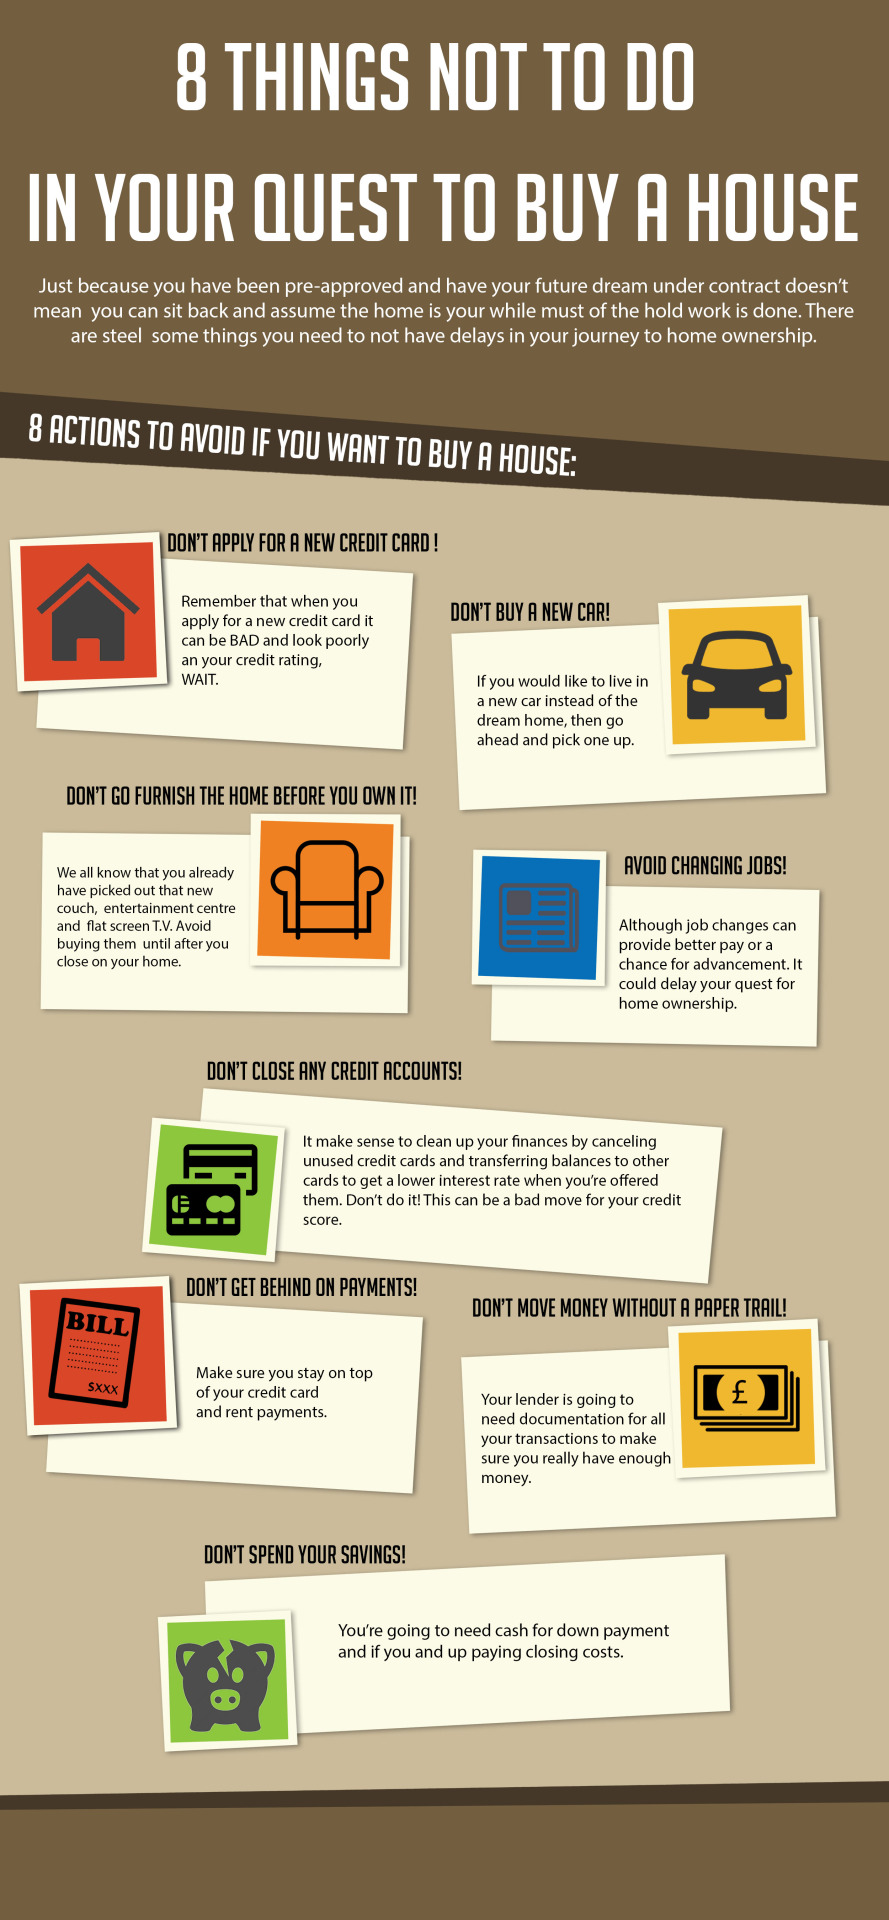 things-not-to-do-to-buy-a-house-infographic-plaza